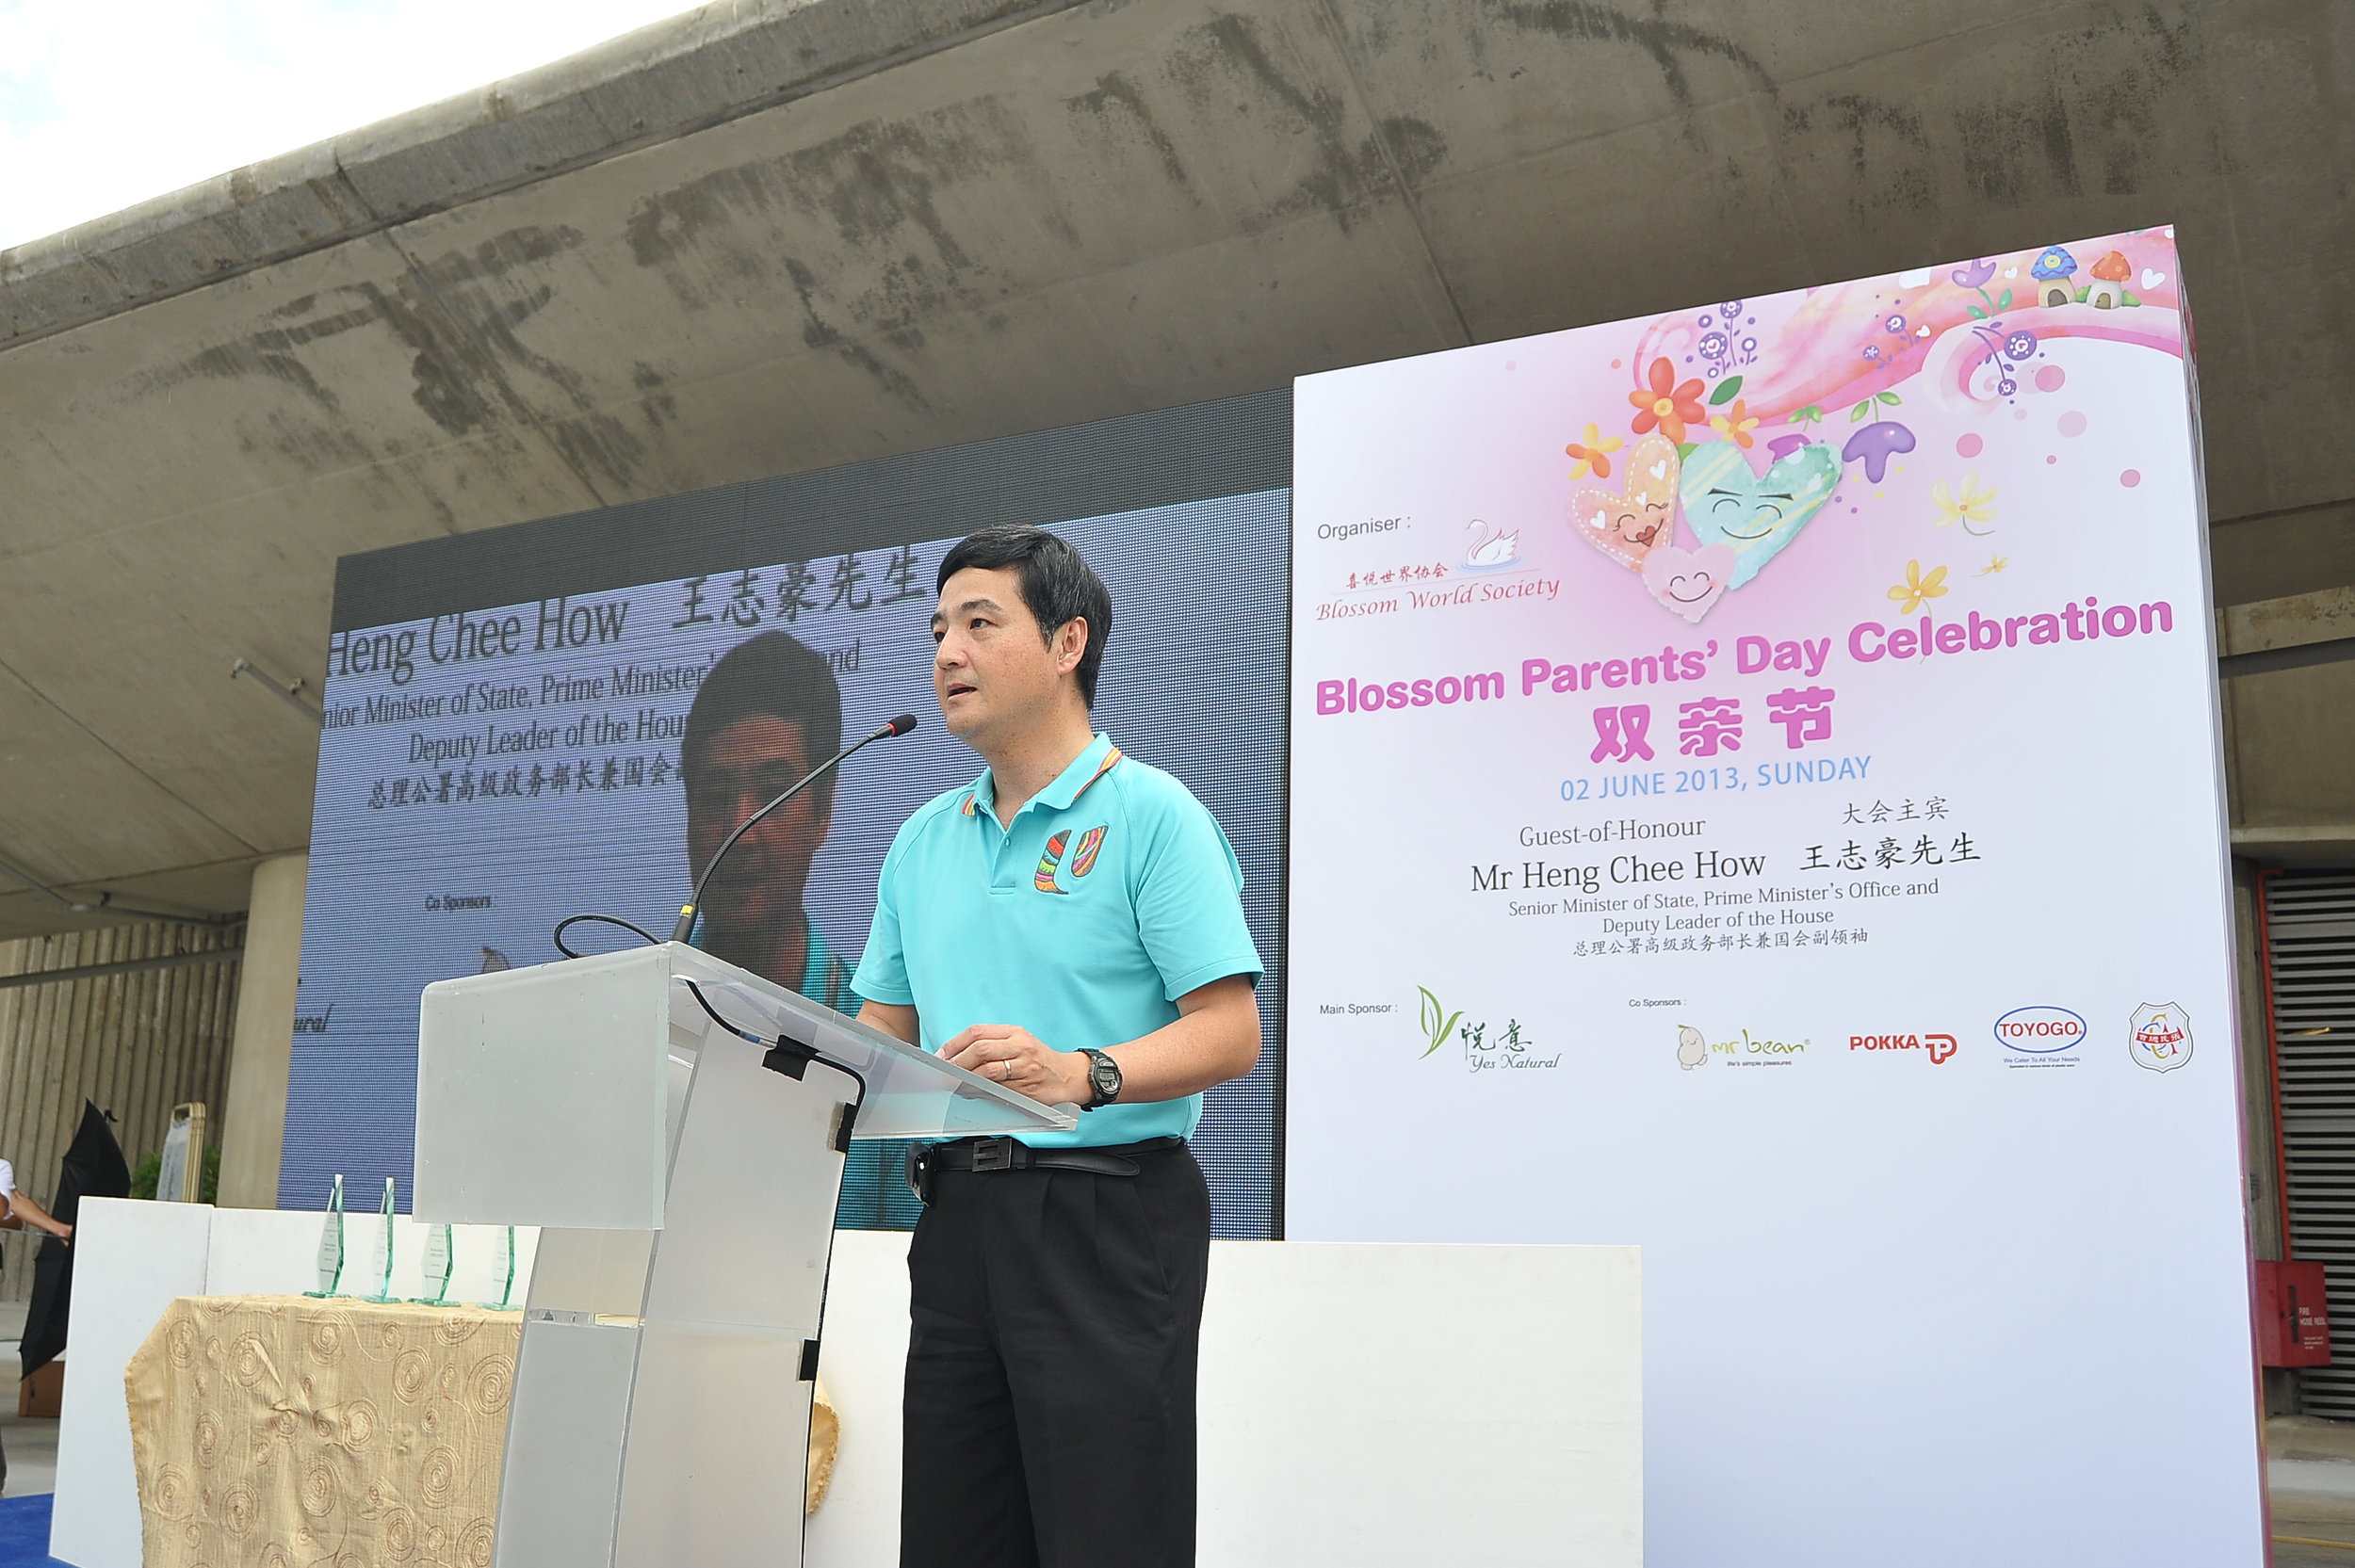 Mr Heng Chee How, Deputy Secretary-General, National Trades Union Congress (NTUC),at Blossom Parents' Day Celebration on Sunday, 02 June 2013 at Marina Barrage.